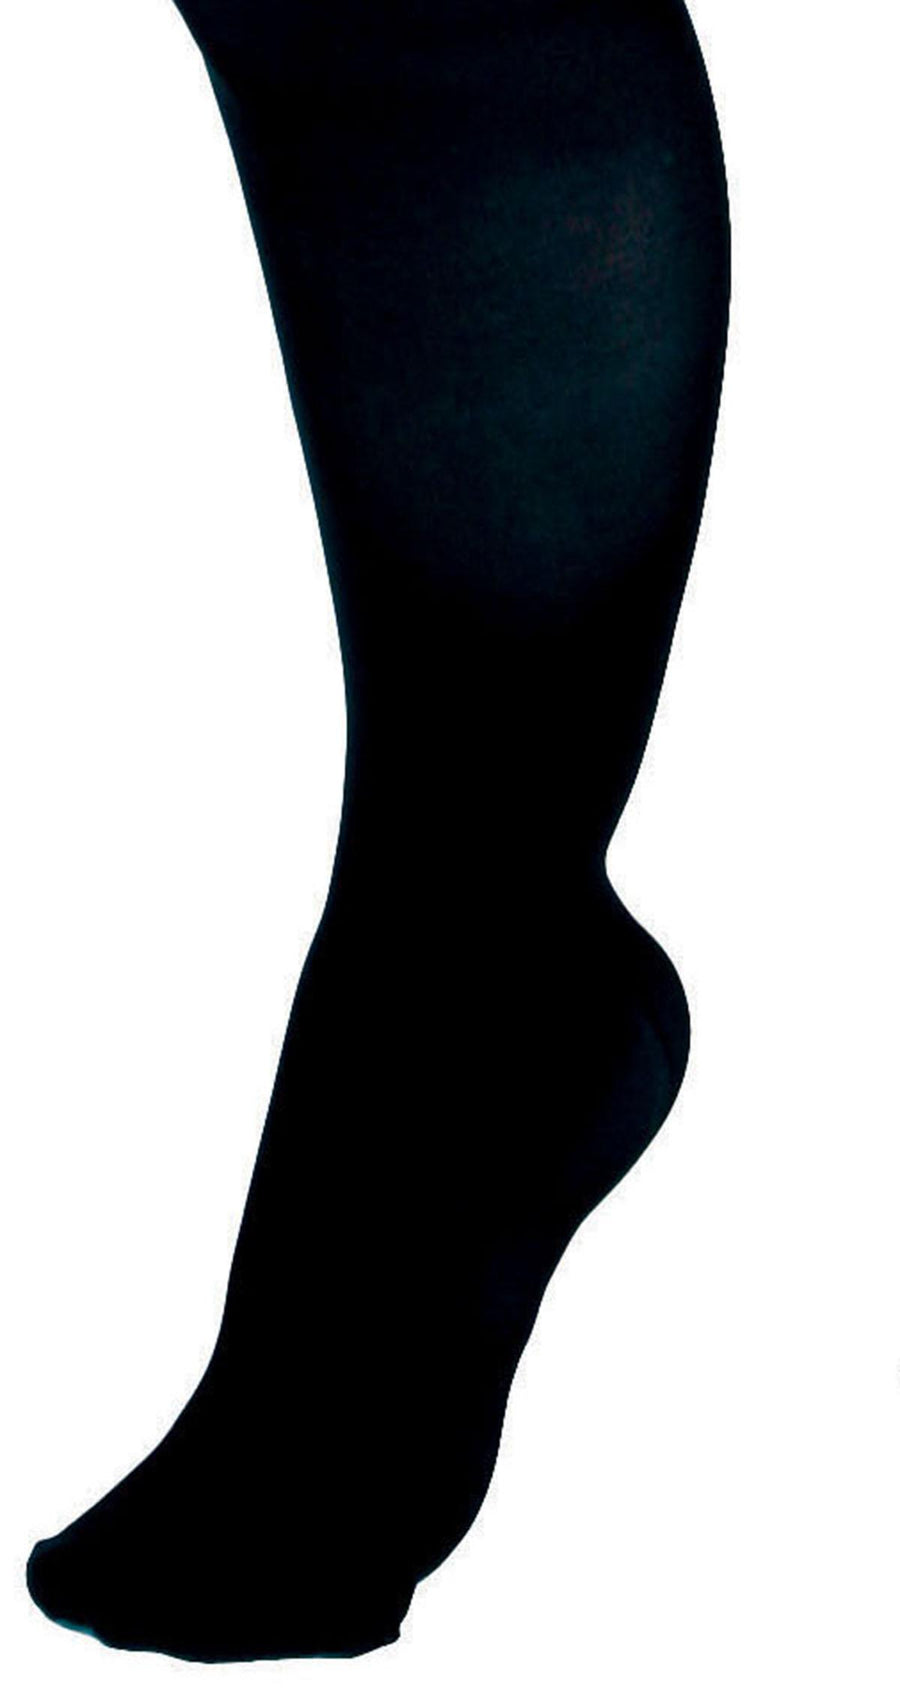 CURAD Knee-High Compression Hosiery, Black, C, Regular, Each